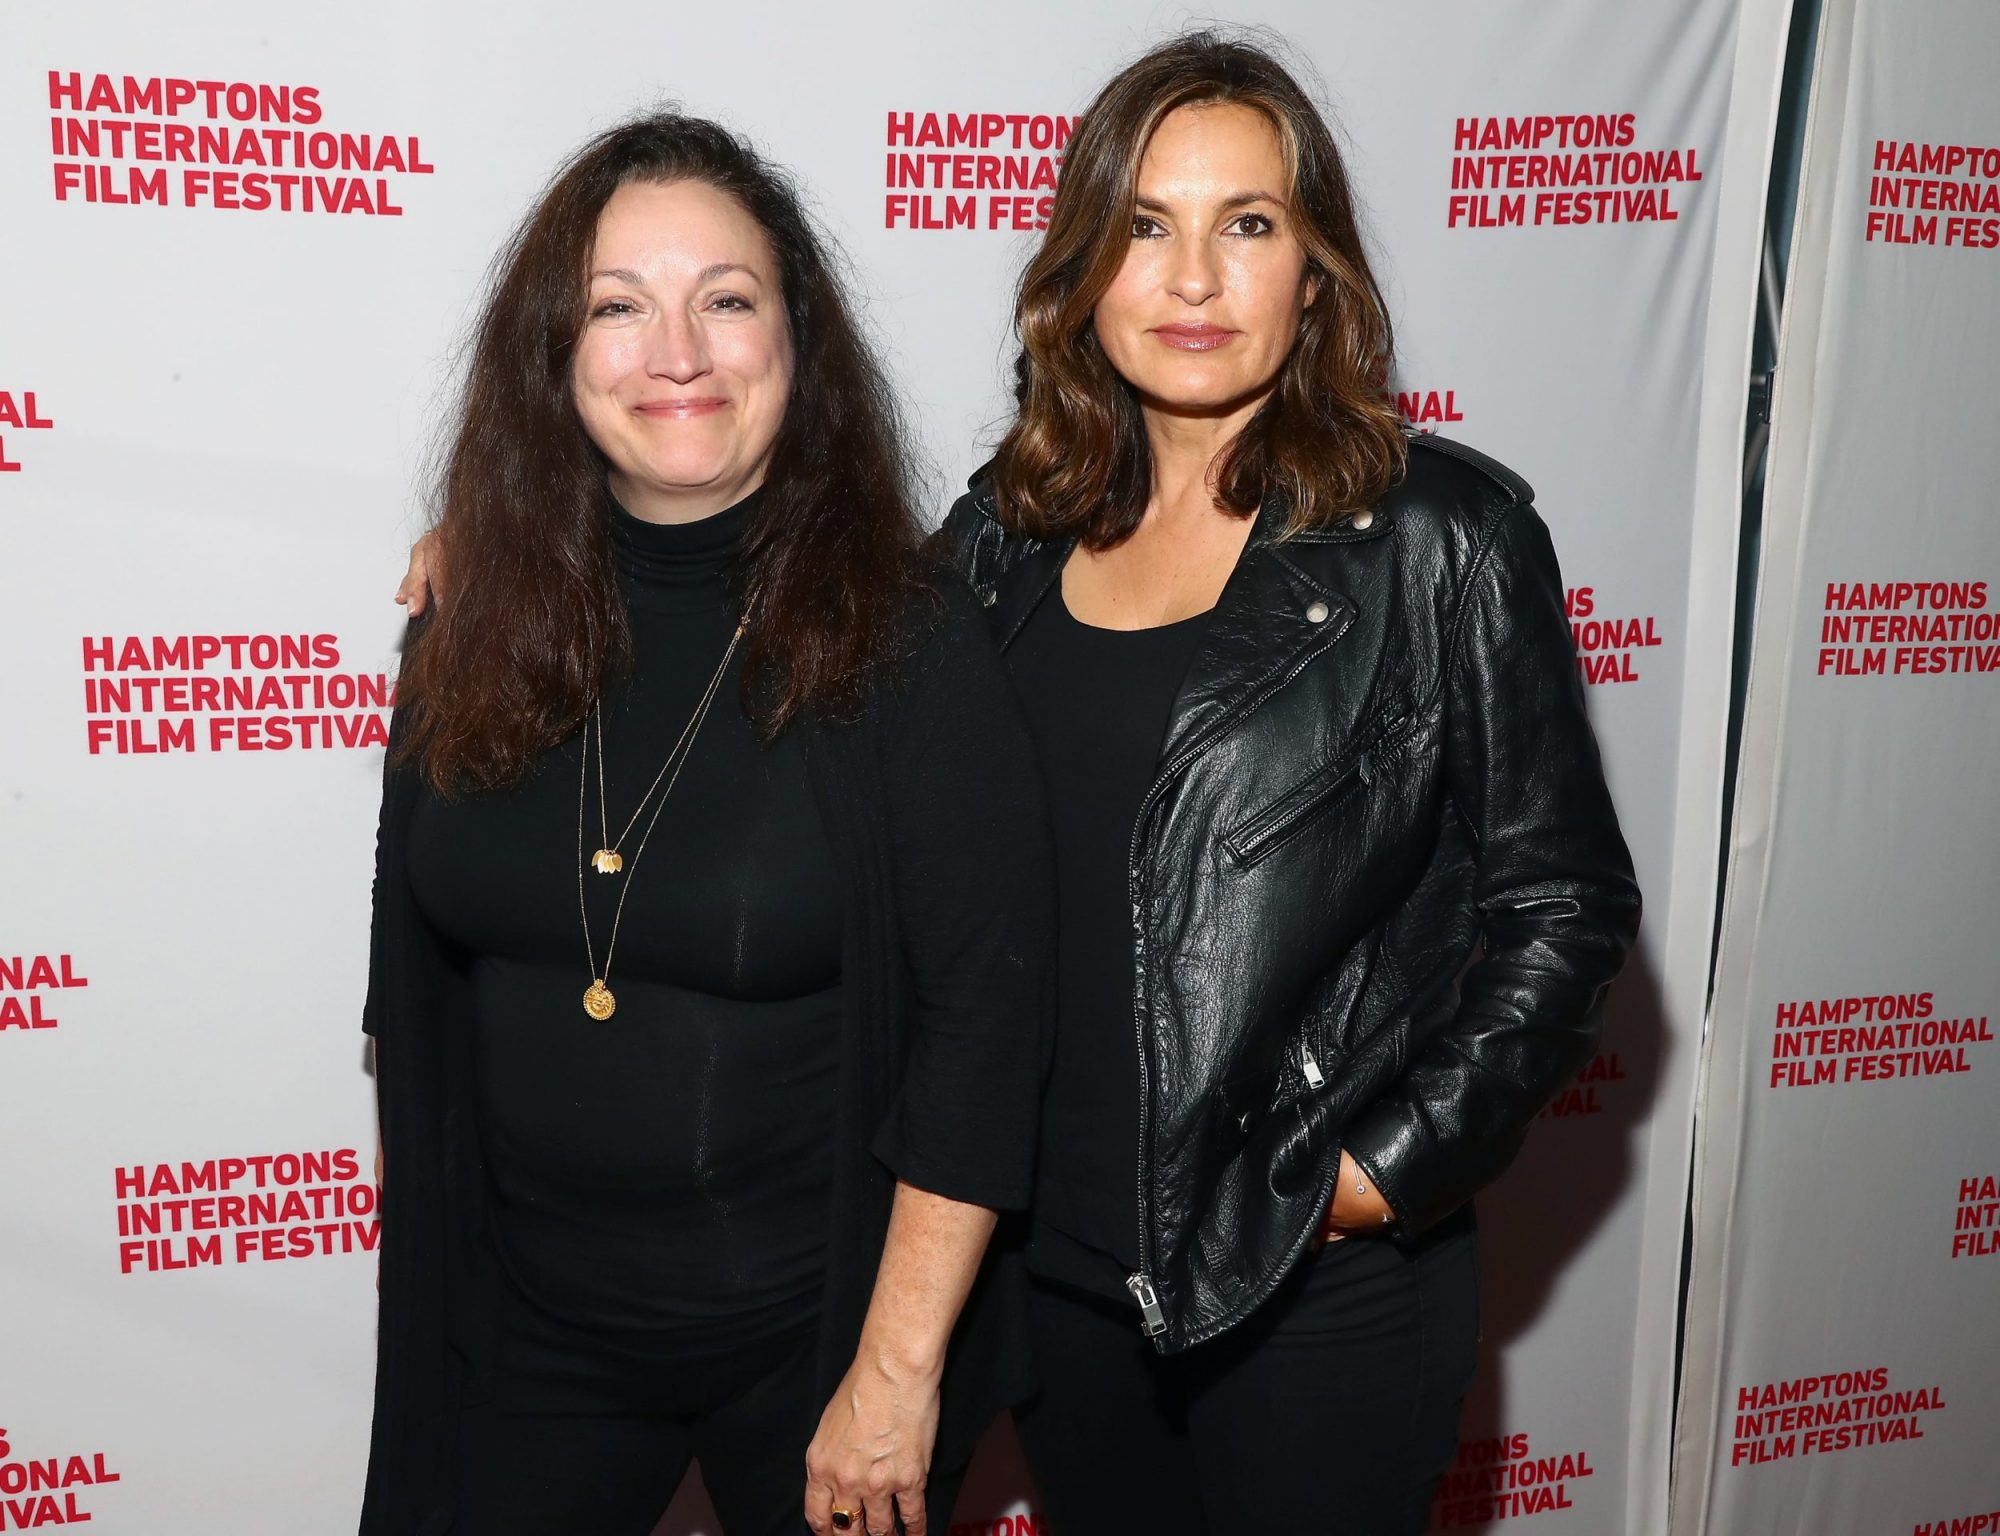 Photo of Mariska Hargitay and Trish Adlesic